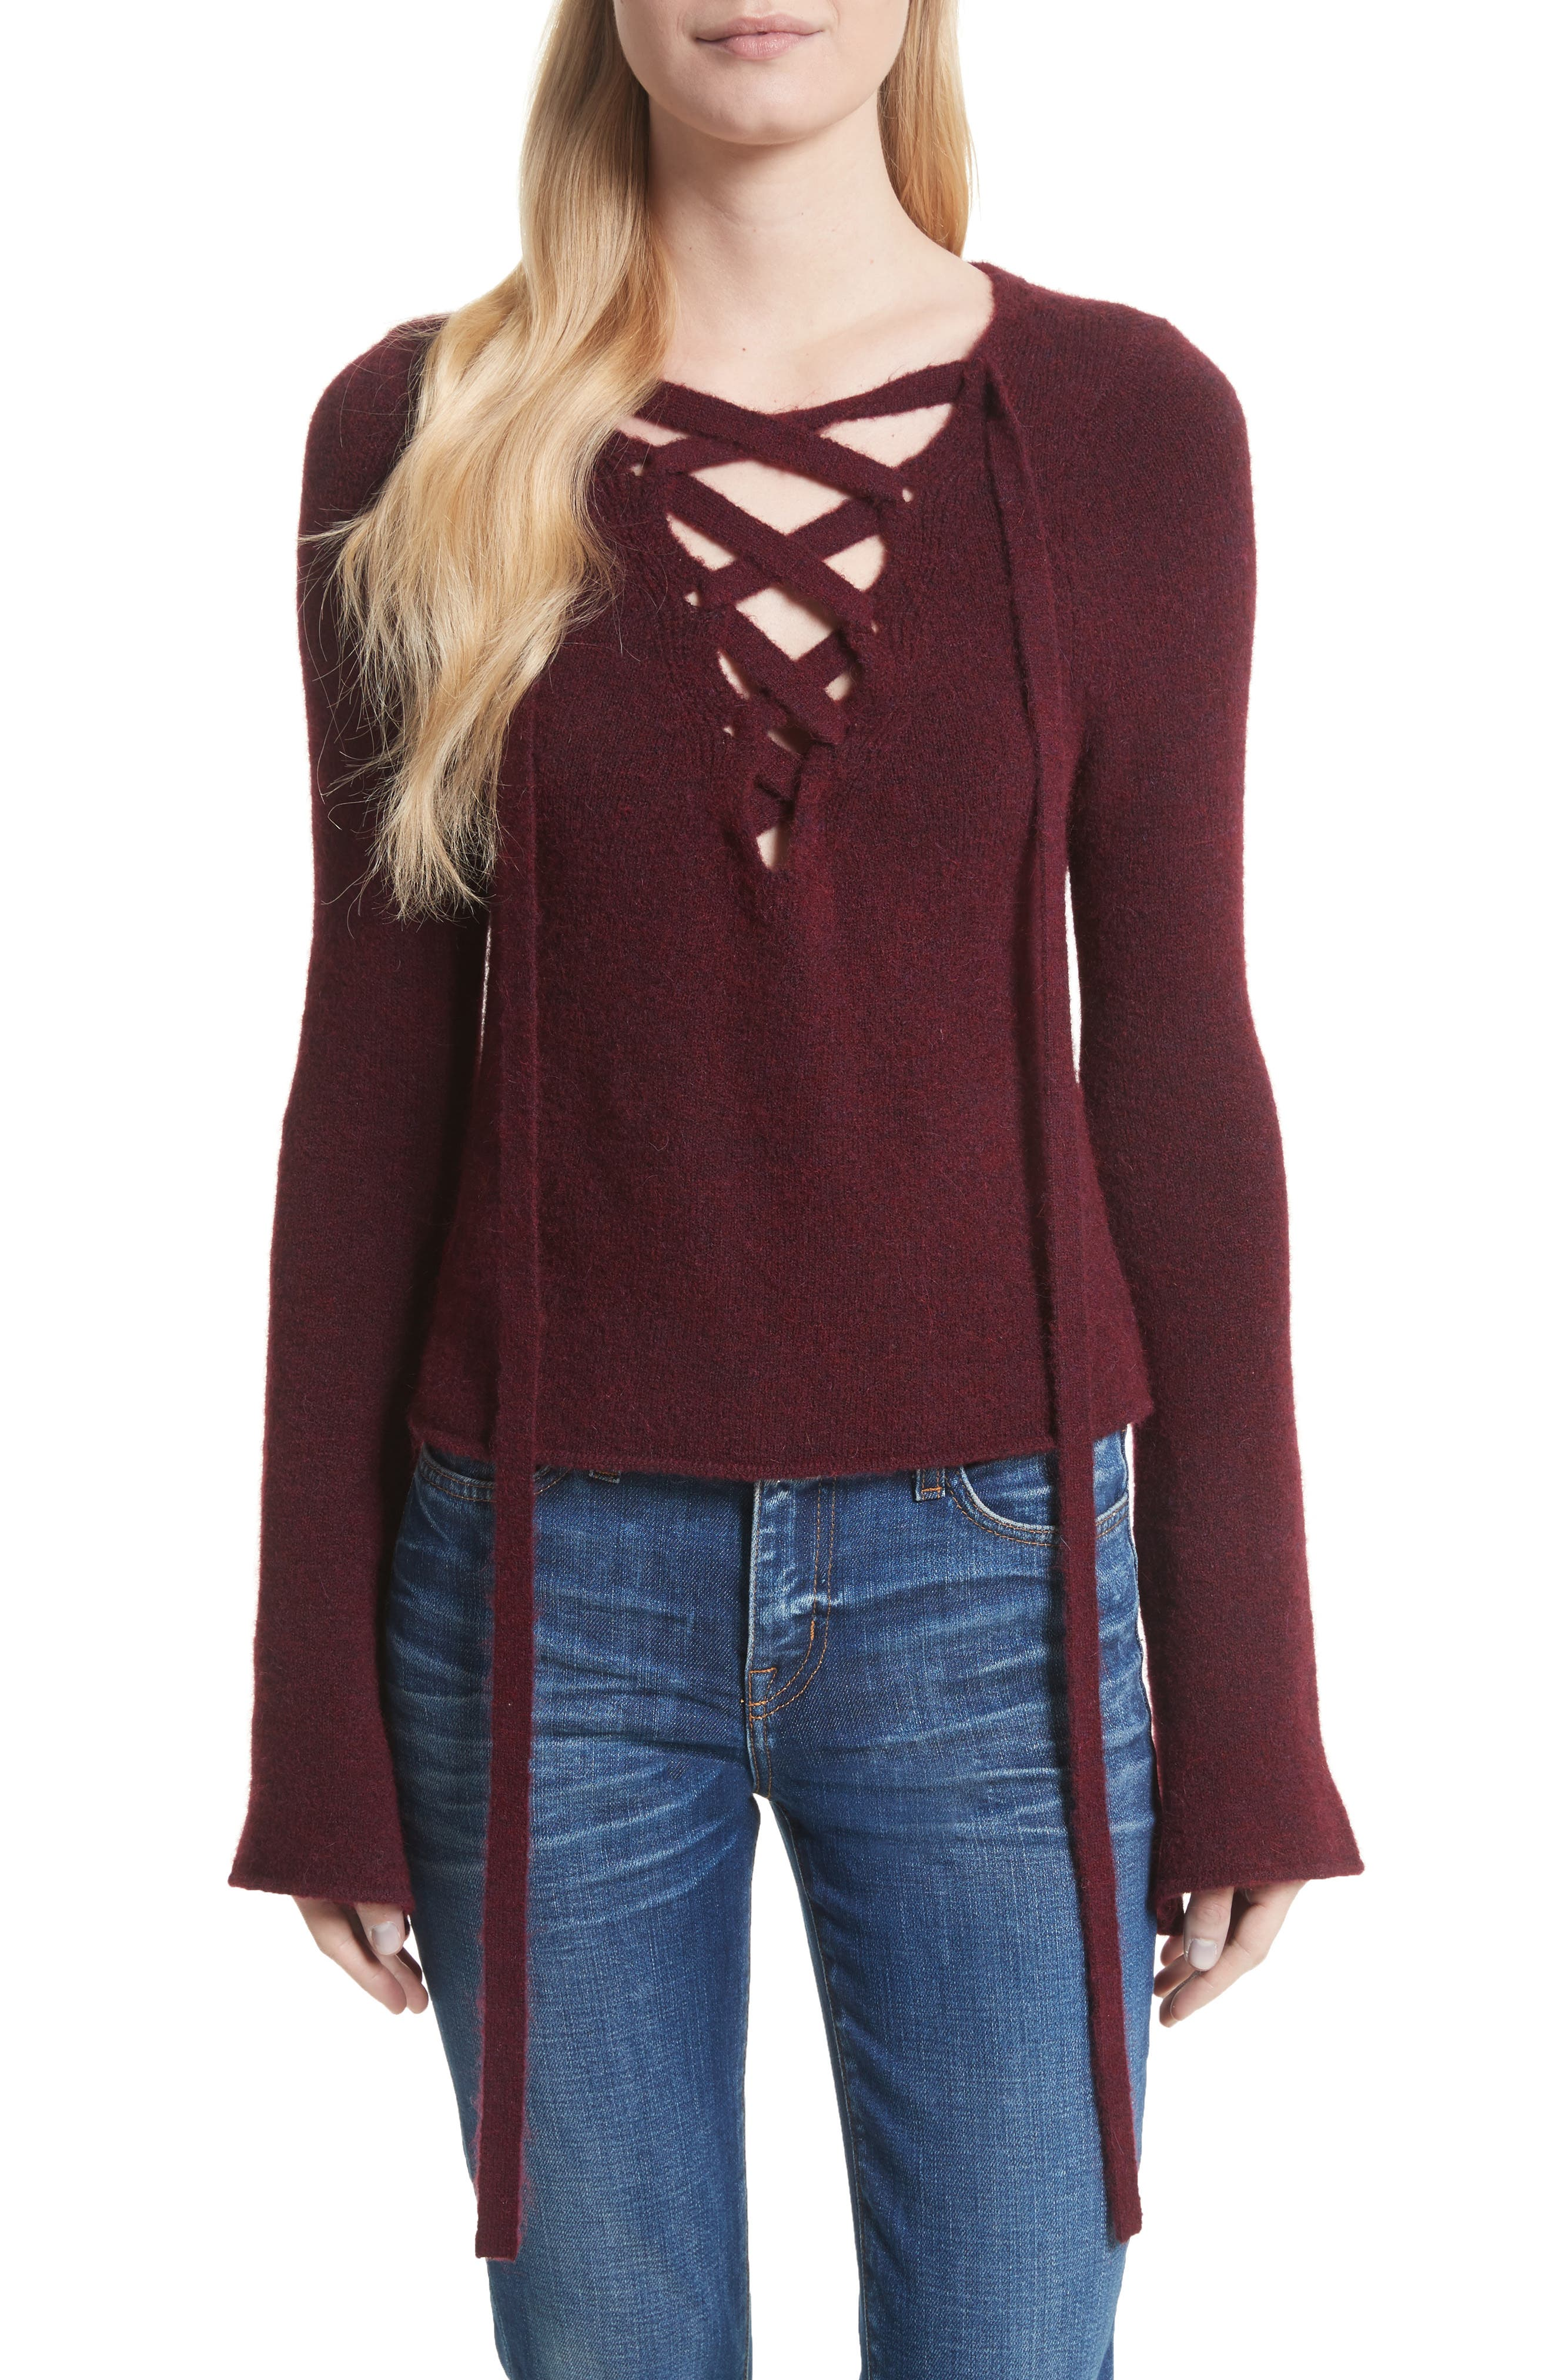 Candela Lace-Up Sweater,                         Main,                         color, 600